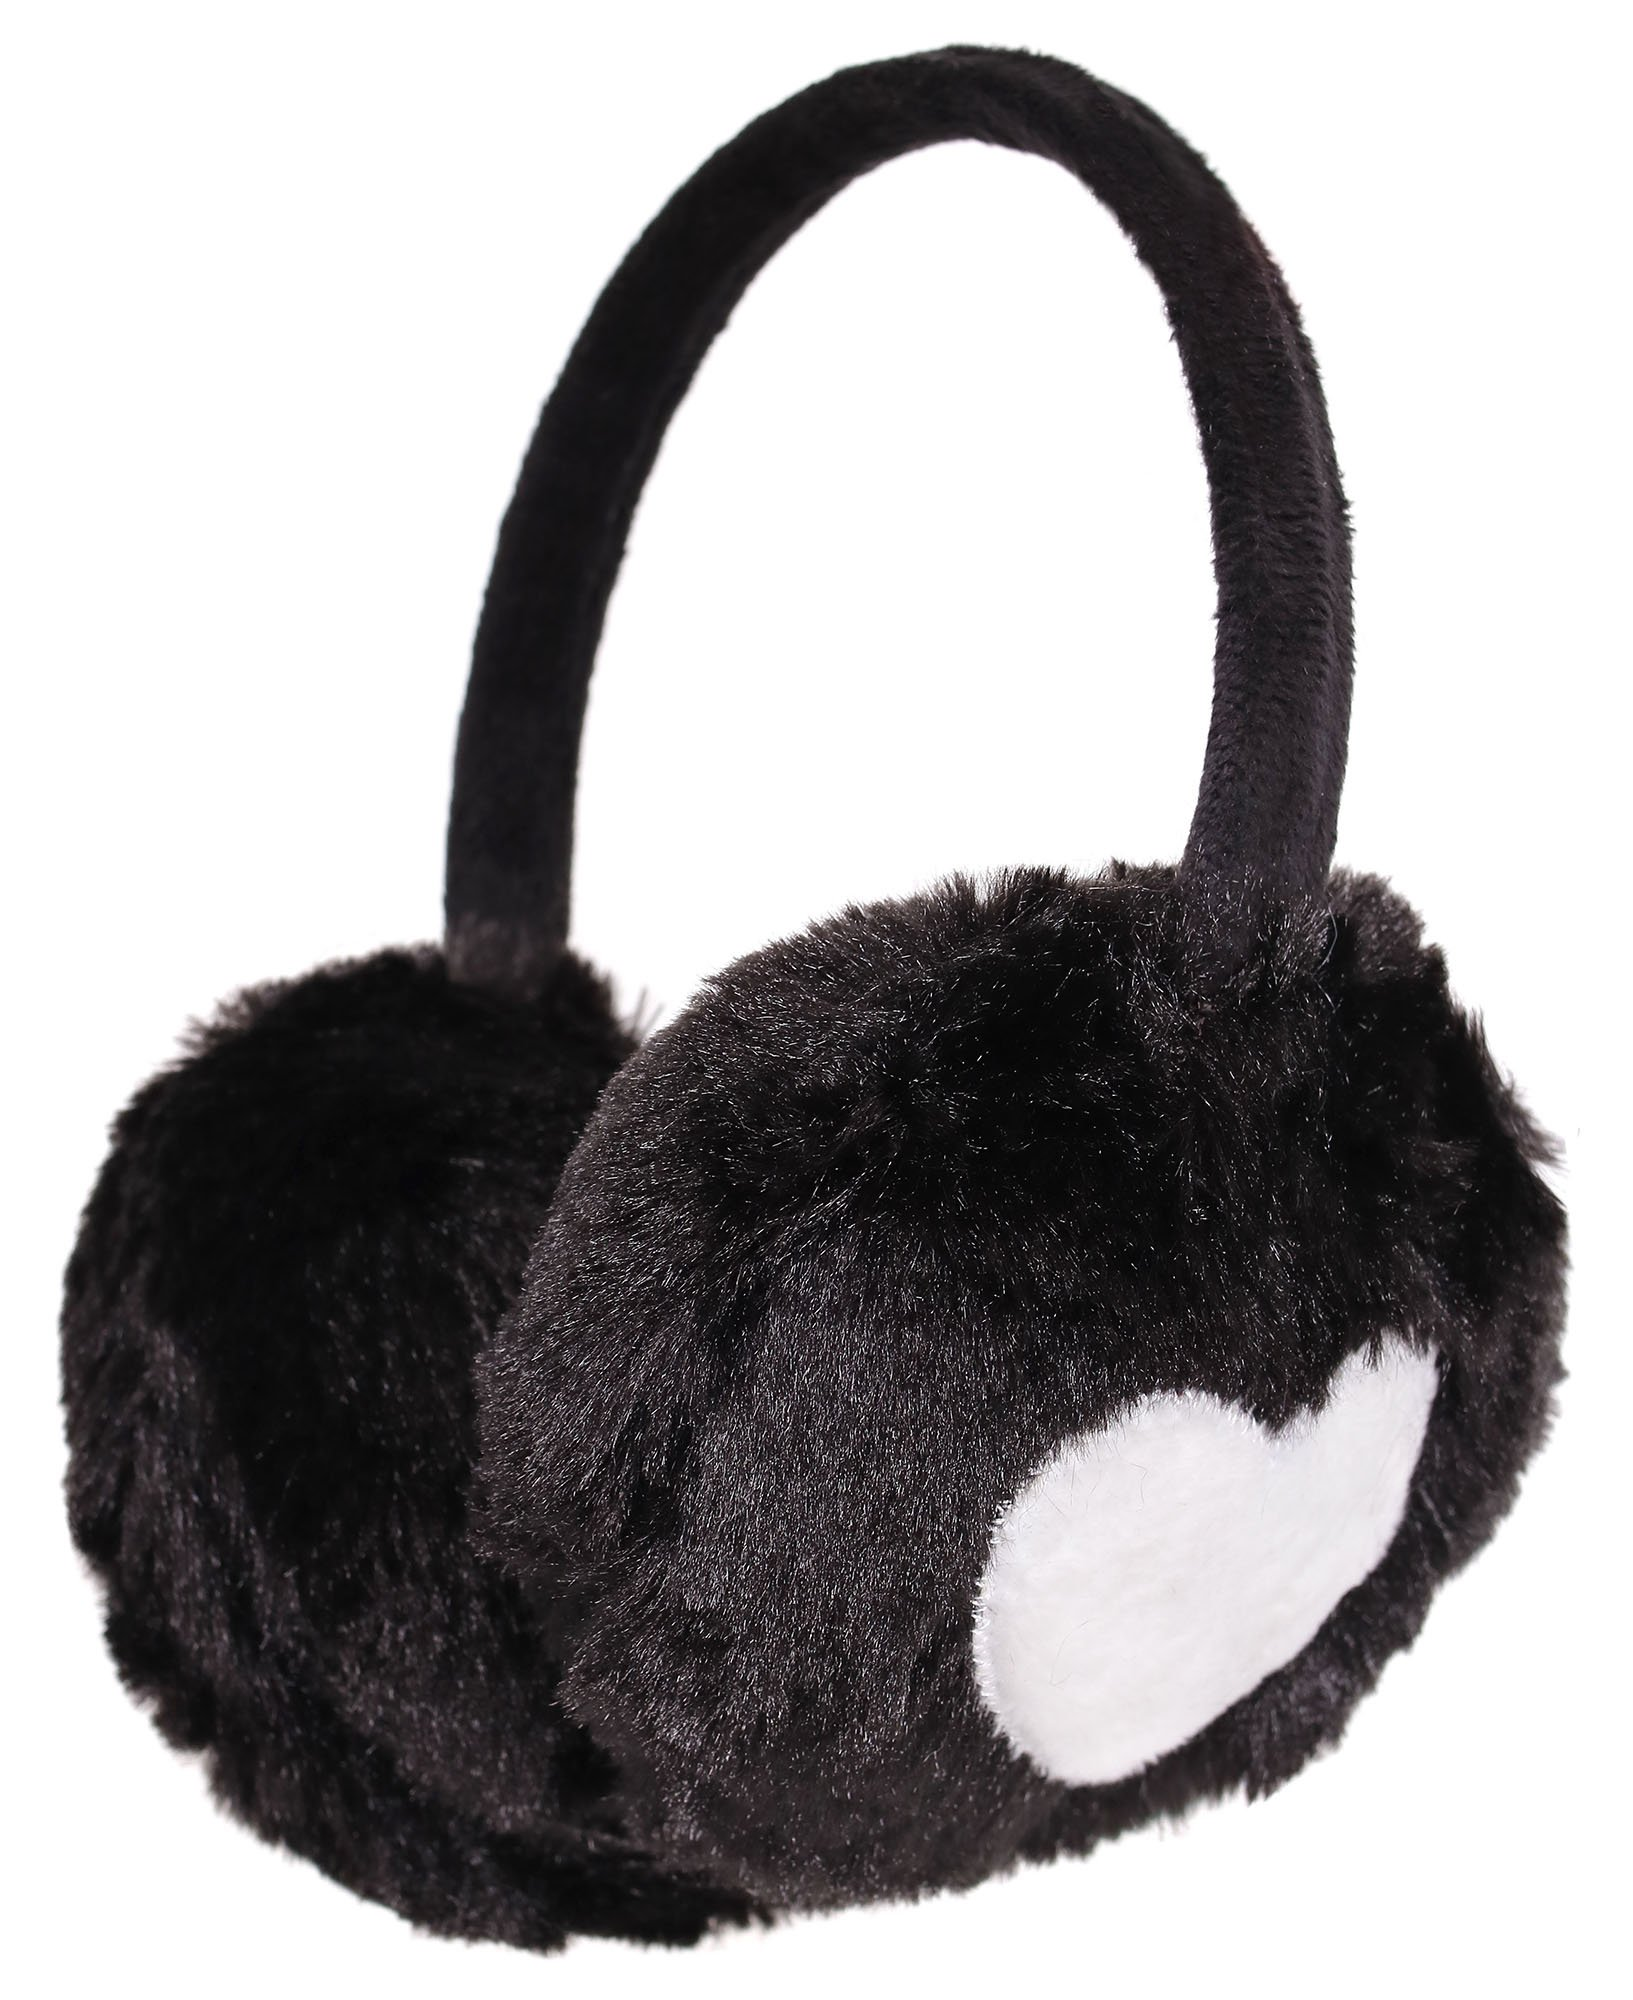 RUYA Men Winter Cold Proof Earmuffs Foldable Faux Fur Ear Warmer Ear Muff